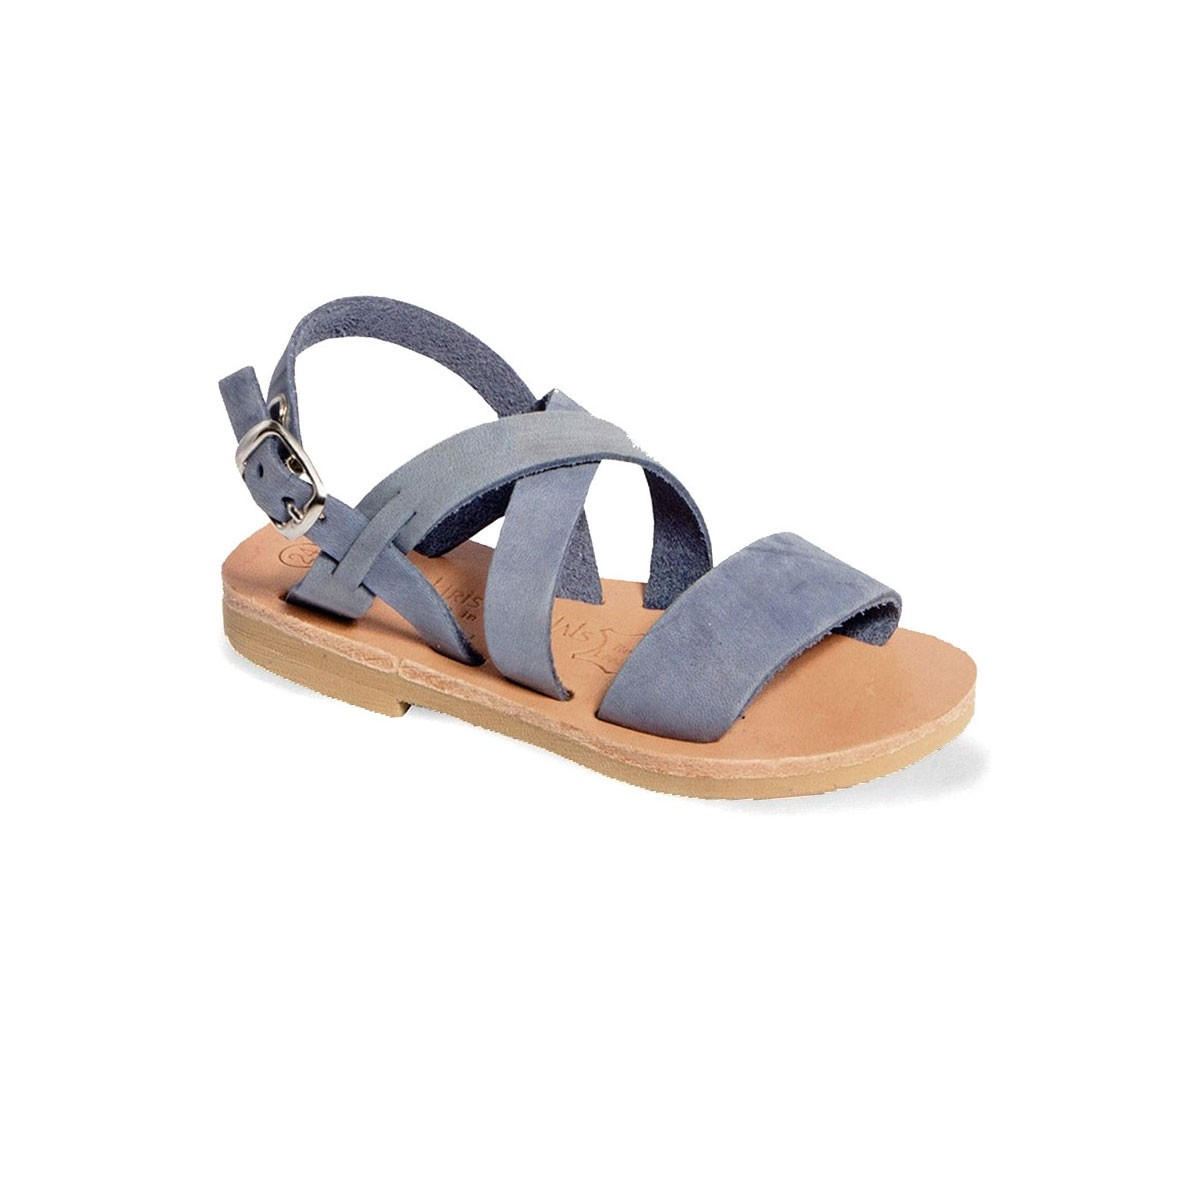 Children Leather Sandals Tsakiris 167